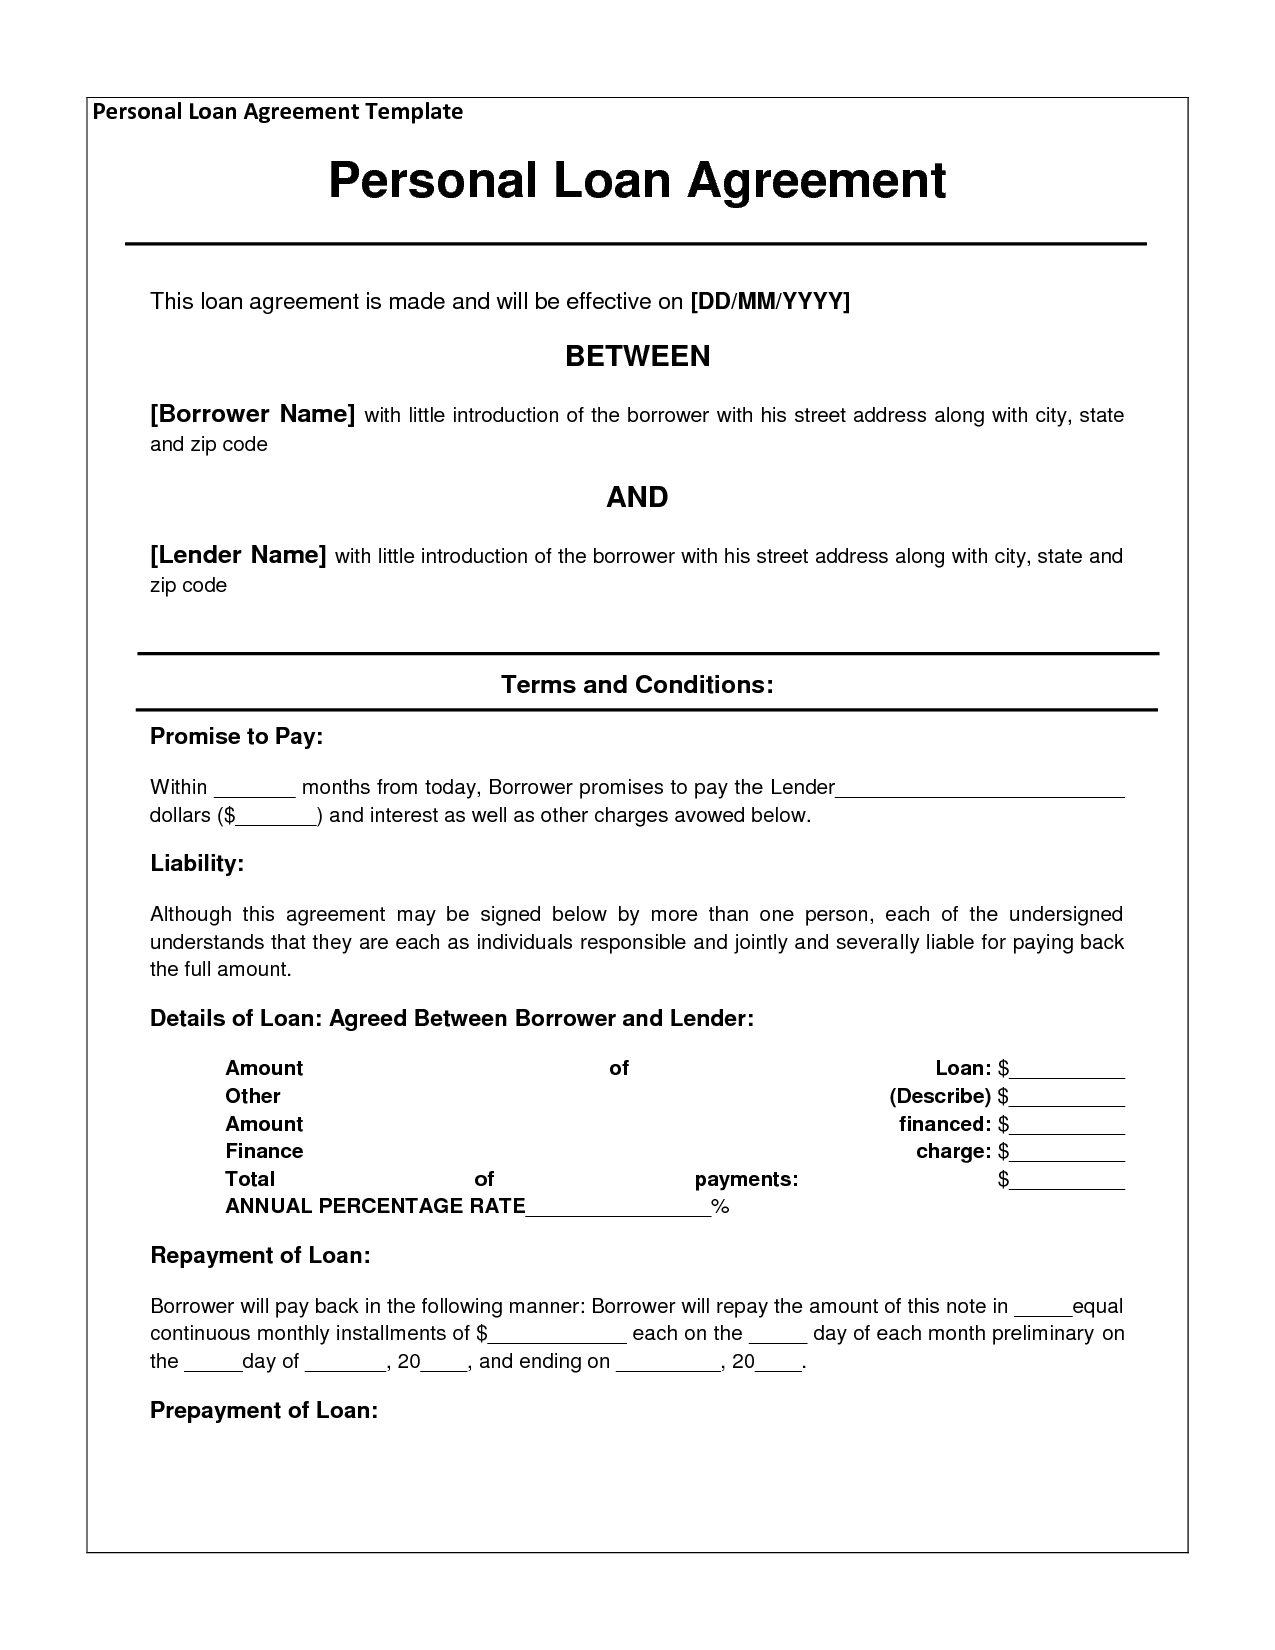 Personal Loan Agreement – Private Loan Agreement Template